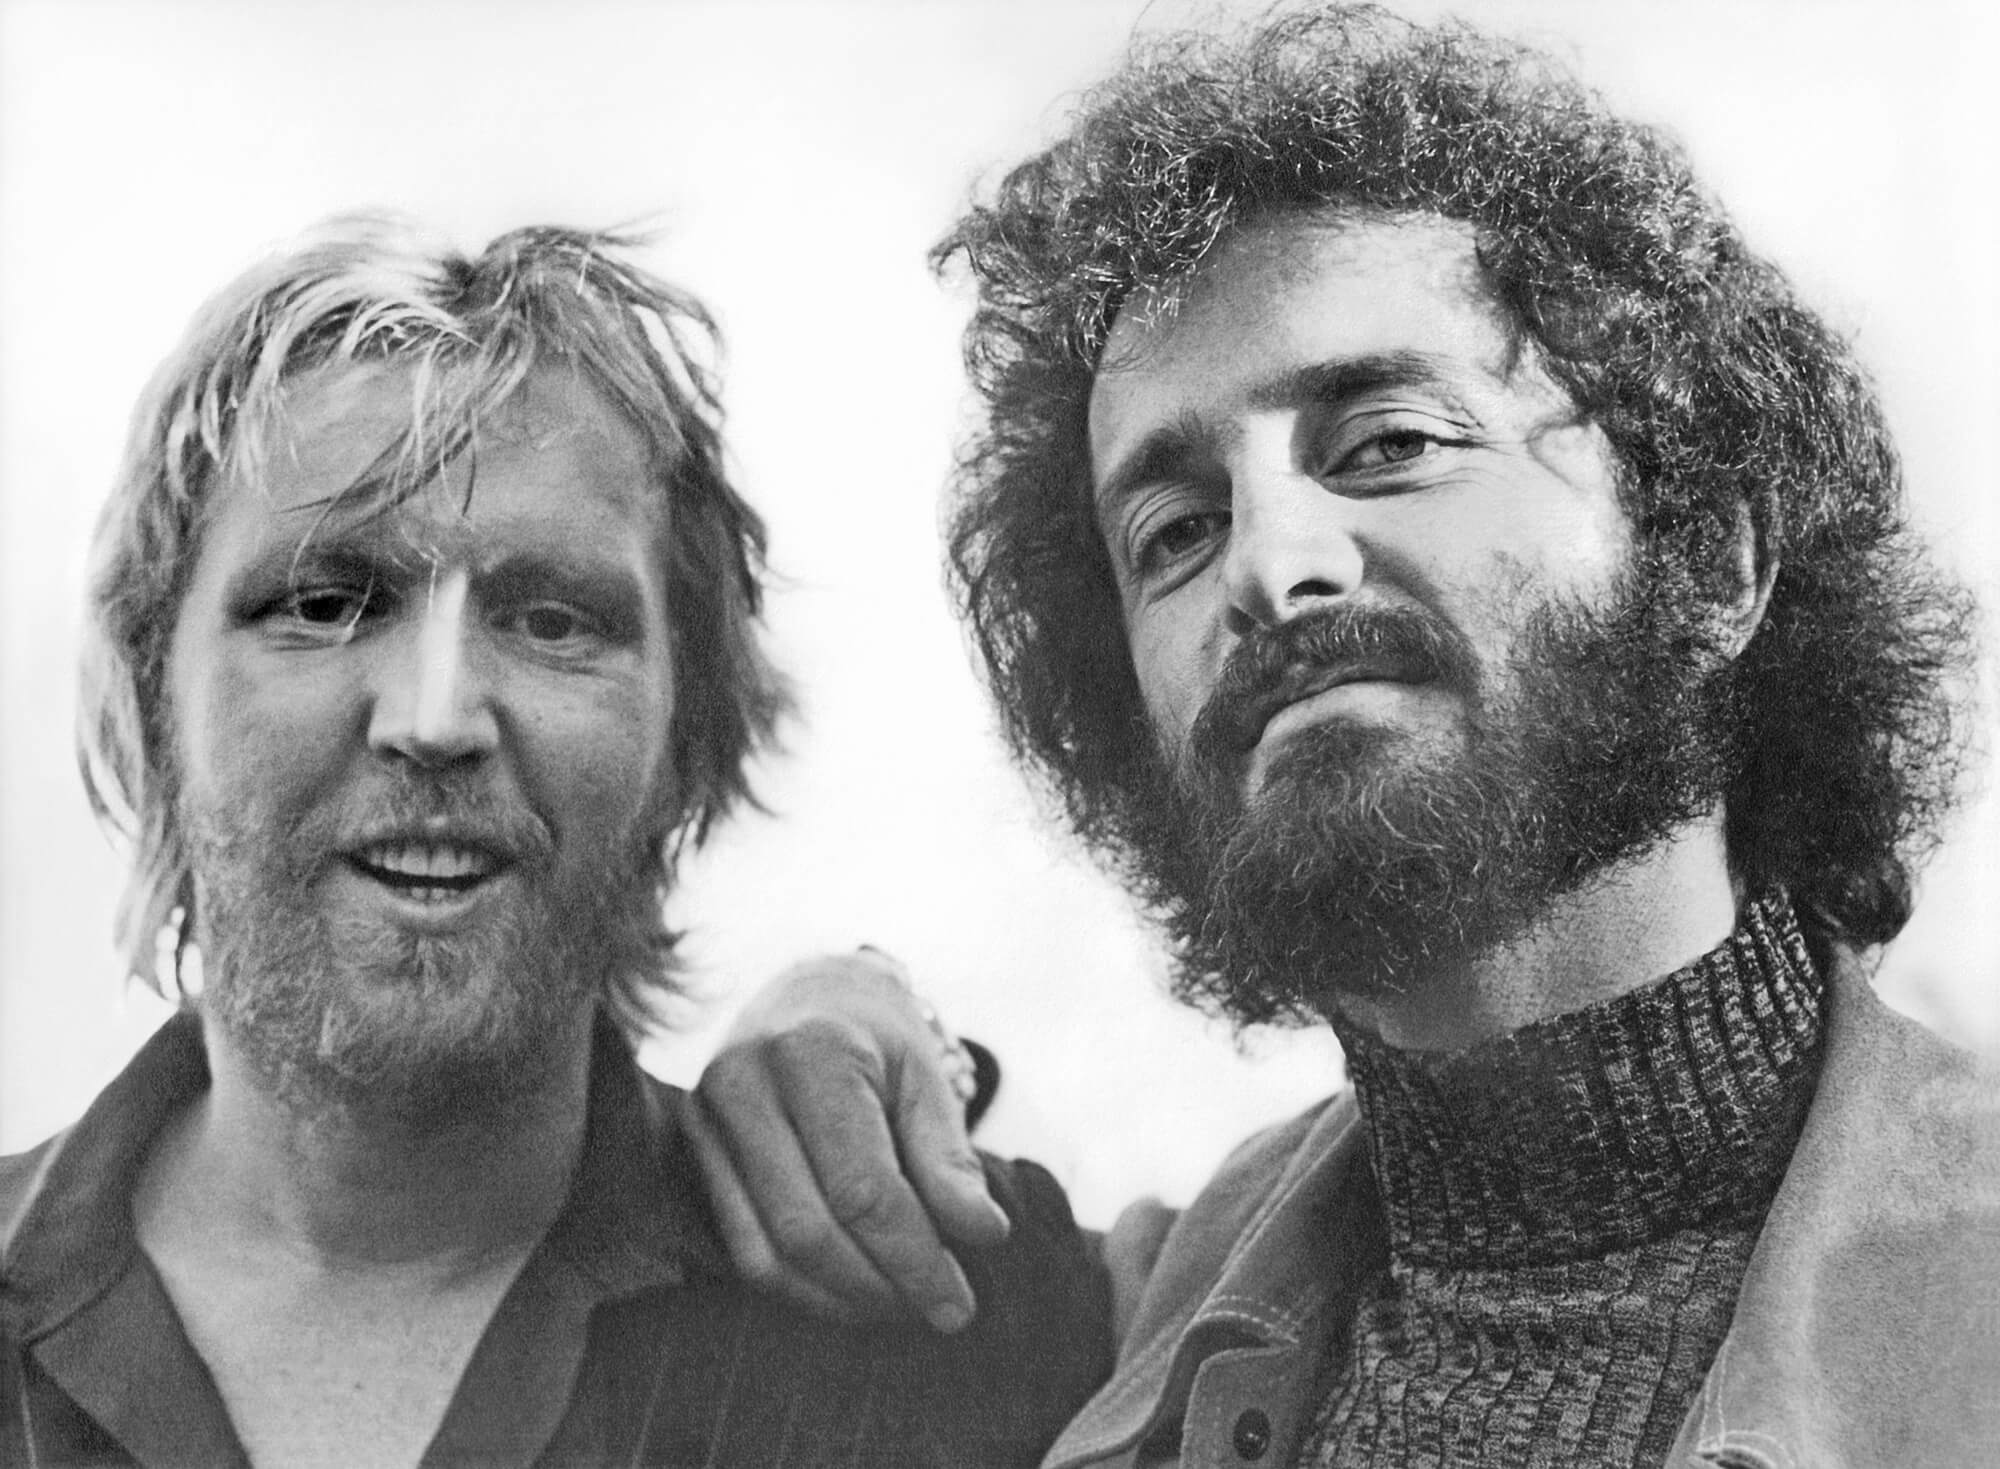 Harry Nilsson & Michel Rubini